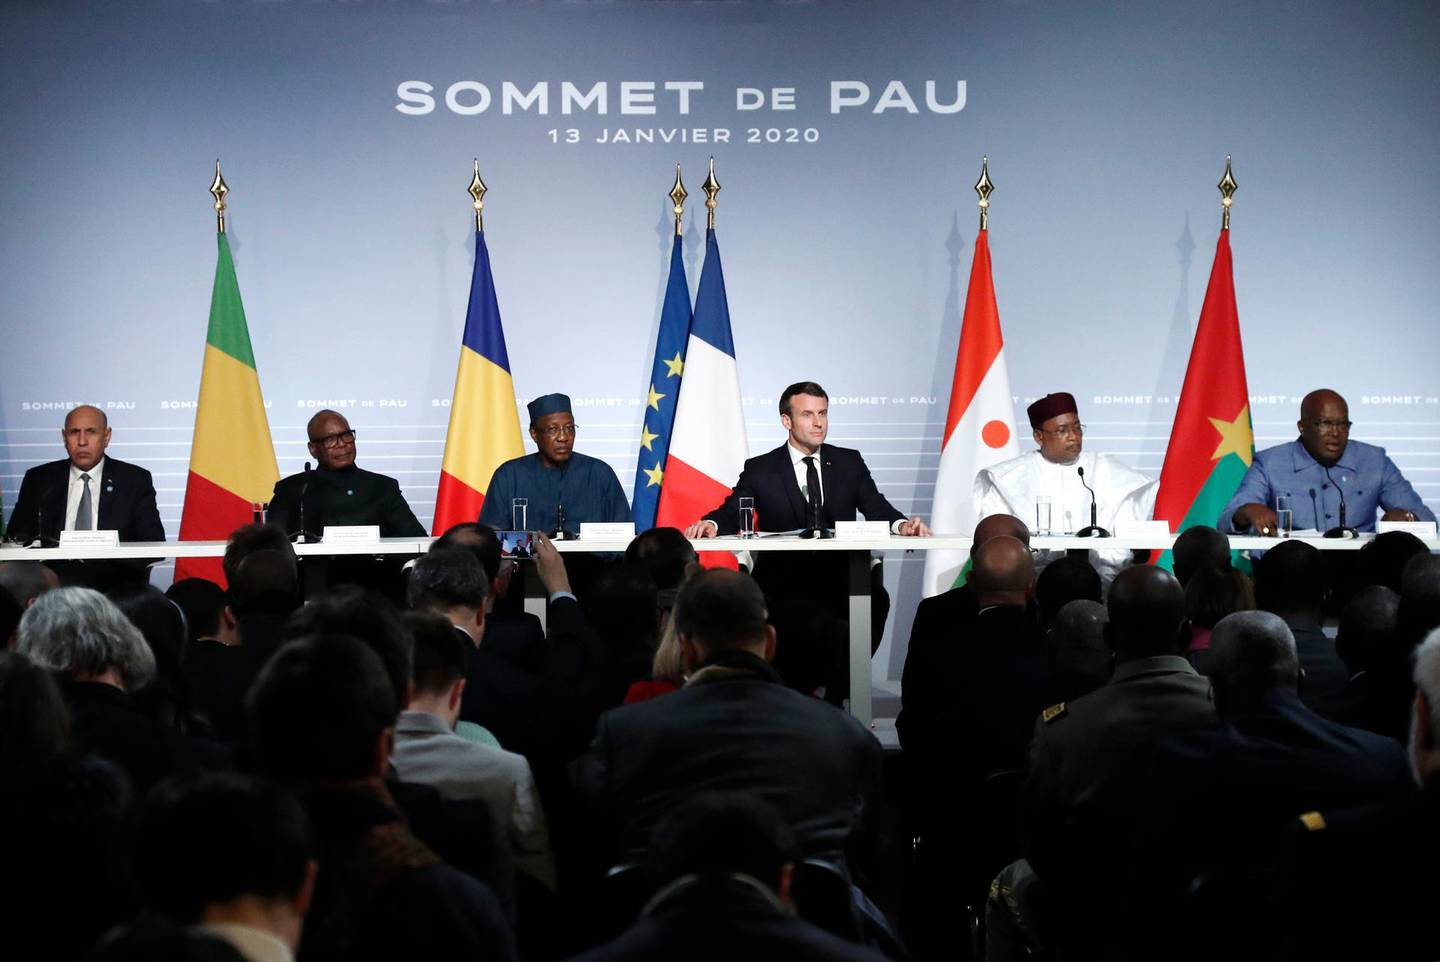 French President Emmanuel Macron, Third right, flanked by Mali's President Ibrahim Boubacar Keita, second left, Burkina Faso's President Roch Marc Christian Kabore, right, Niger President Mahamadou Issoufou second right, Mauritania's President Mohamed Ould Cheikh El Ghazouani, left, and Chad's President Idriss Deby, third right, attend a press conference following the G5 Sahel summit in Pau, southwestern France, Monday Jan.13, 2020. France is preparing its military to better target Islamic extremists in a West African region that has seen a surge of deadly violence. (Guillaume Horcajuelo/Pool Photo via AP)